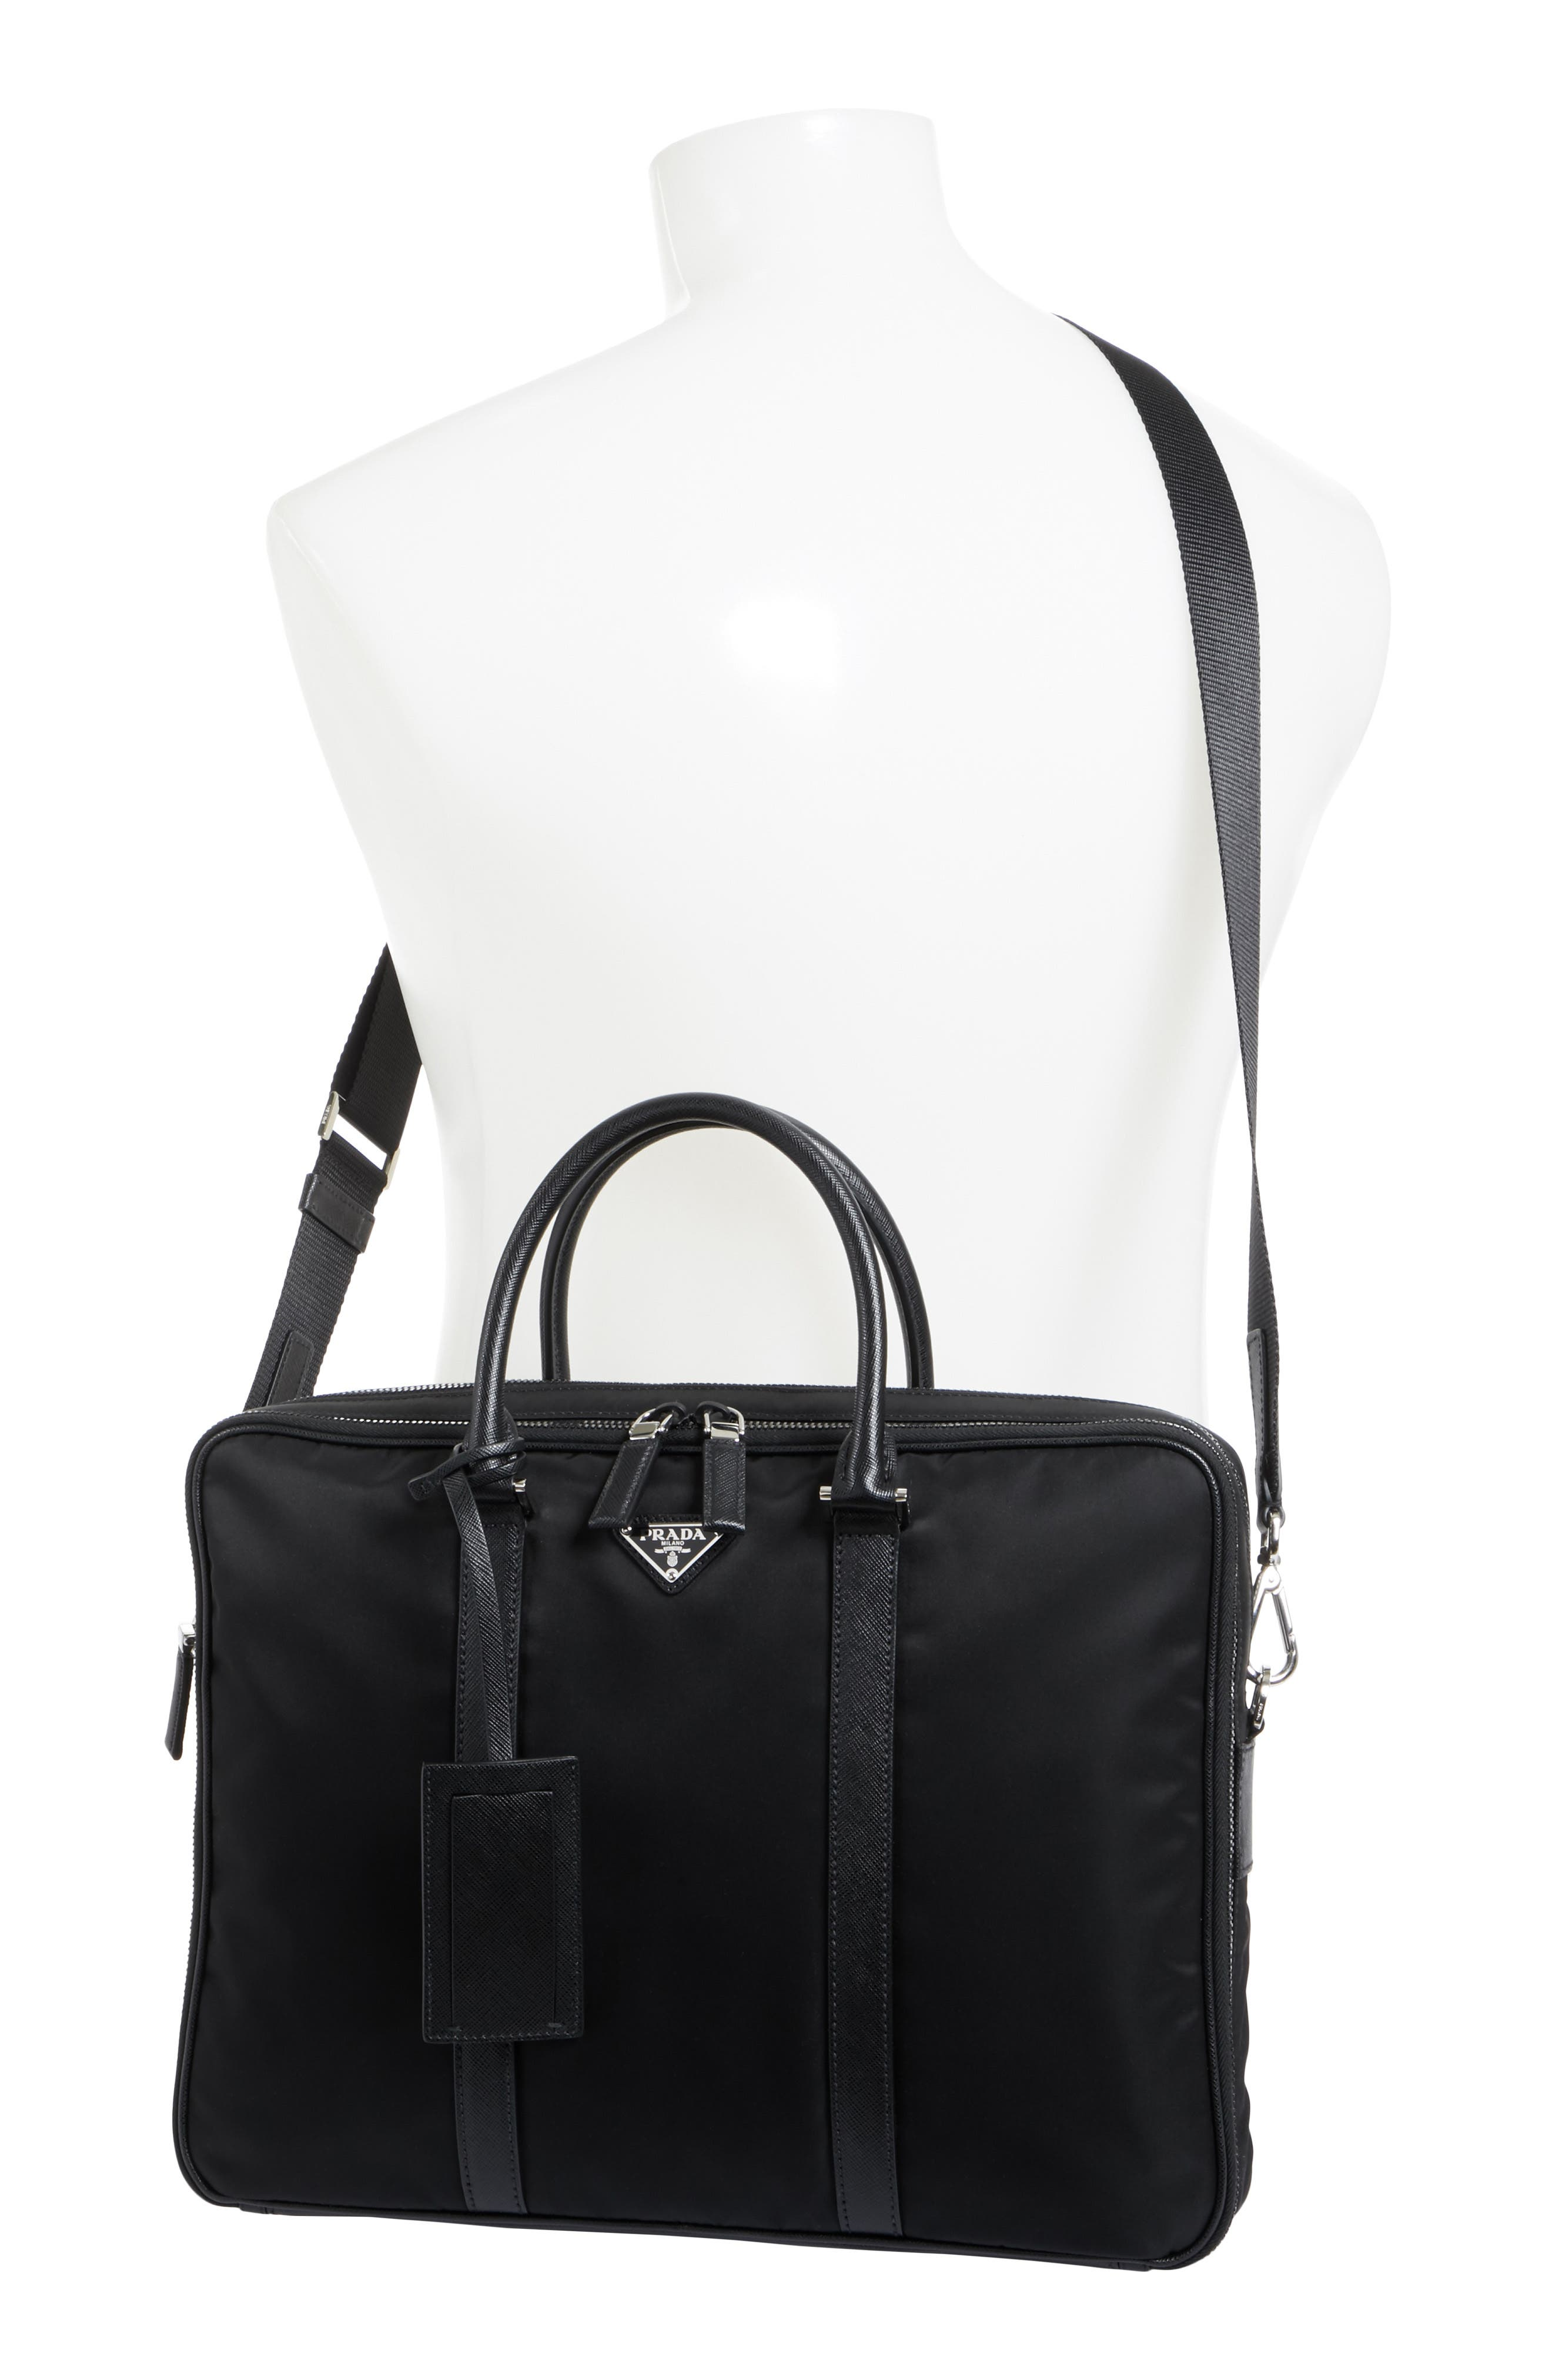 PRADA, Nylon Briefcase with Saffiano Leather Trim, Alternate thumbnail 2, color, 001